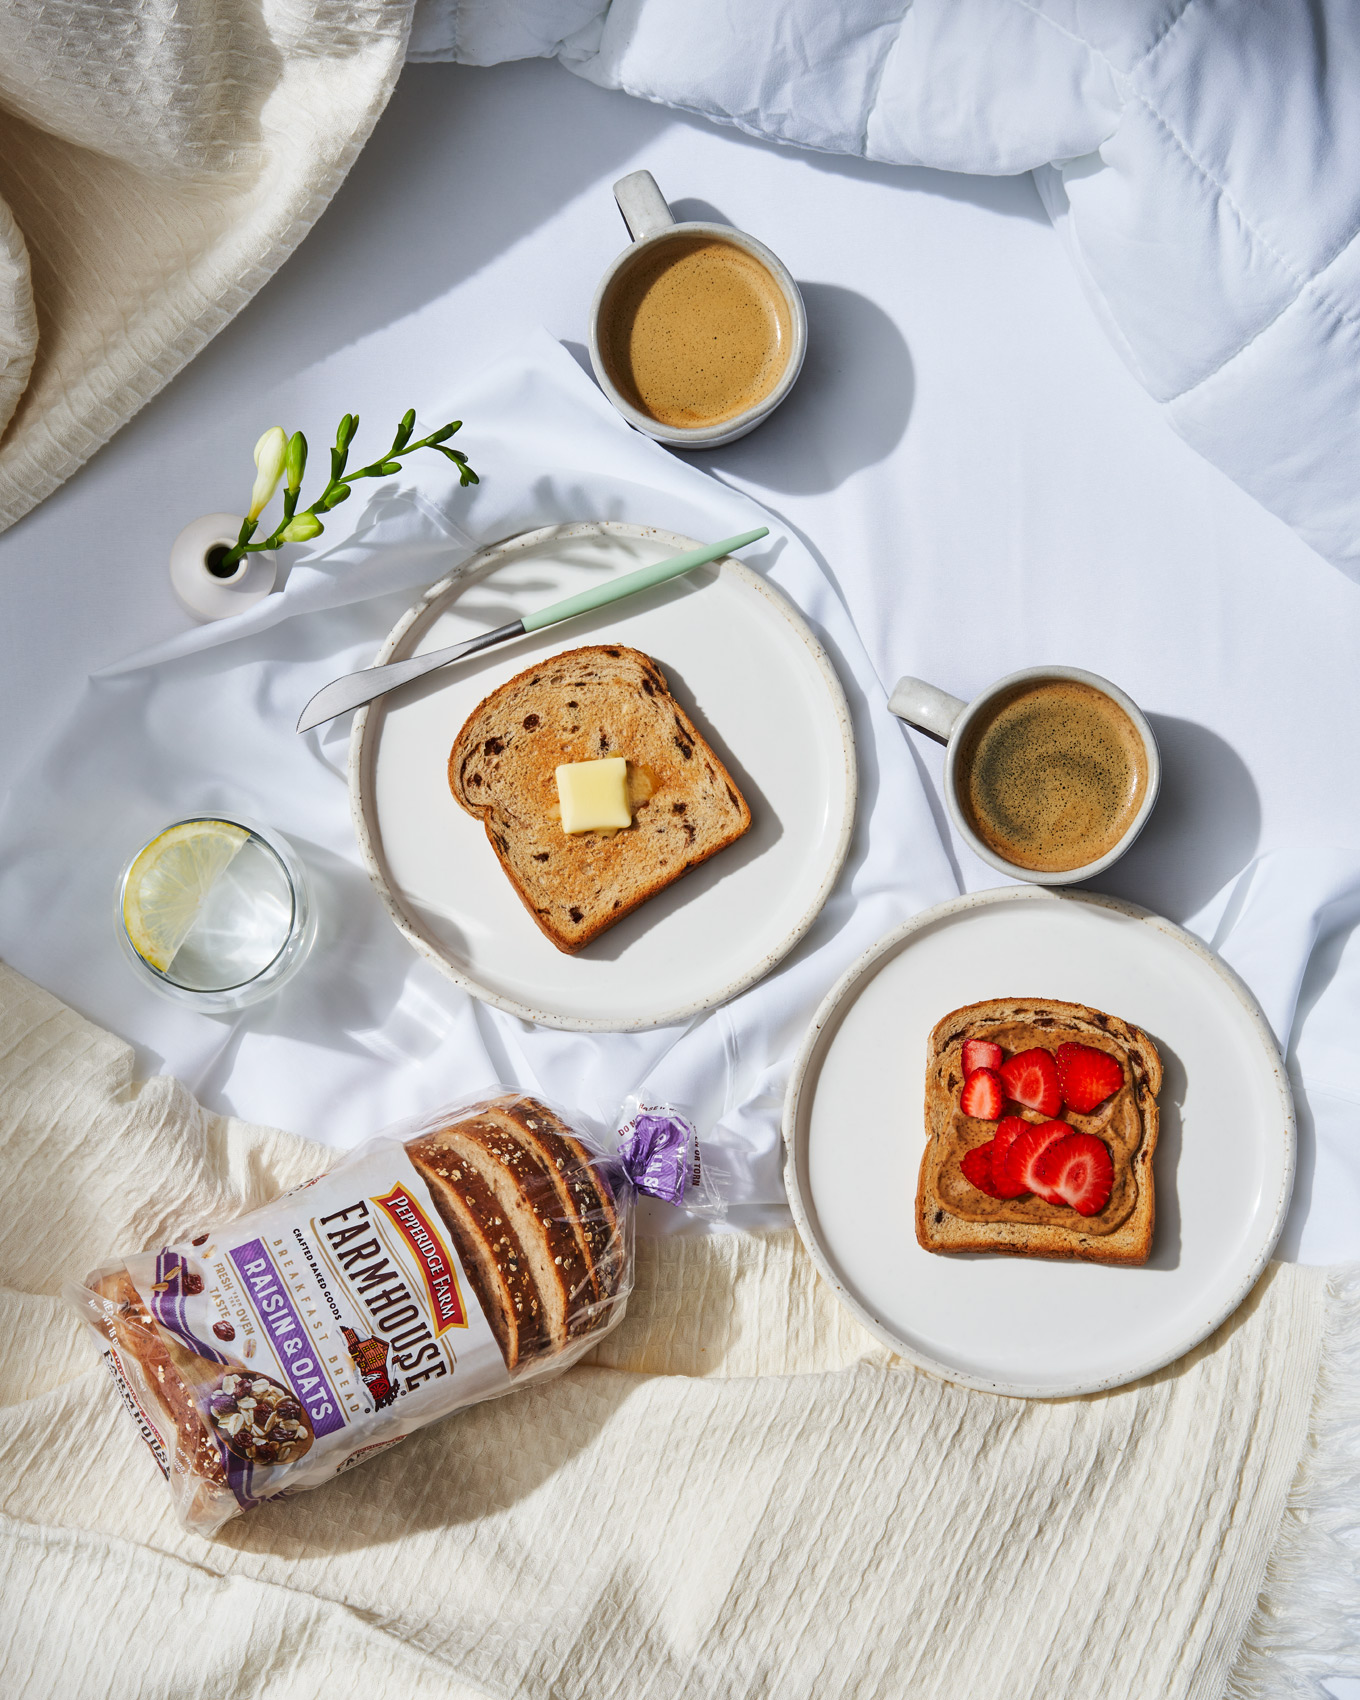 deepi-ahluwalia-pepperidge-farm-breakfast-bed-slice